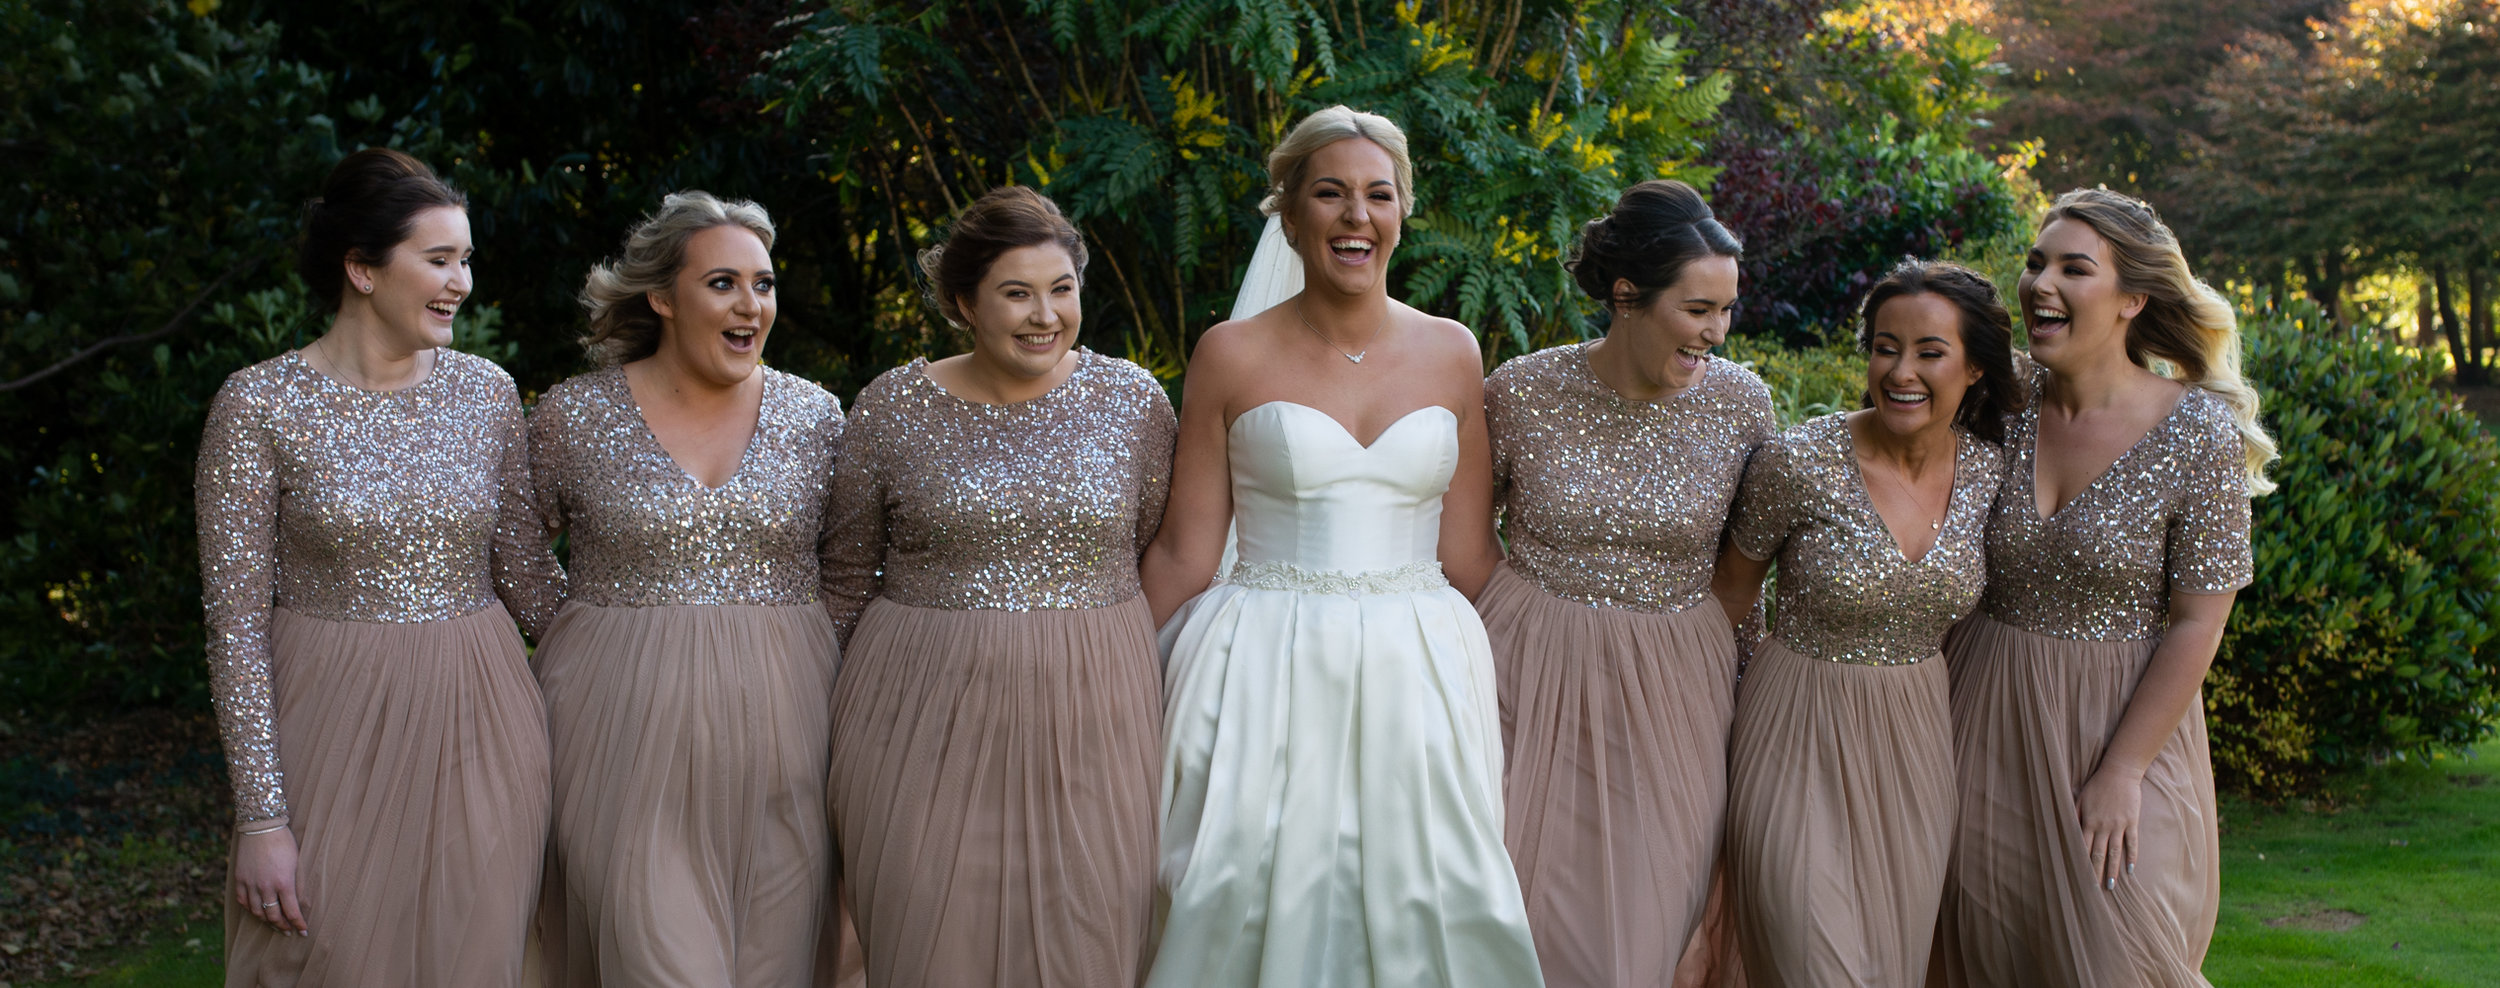 The bride and her bridesmaids having a really good laugh during family group shots